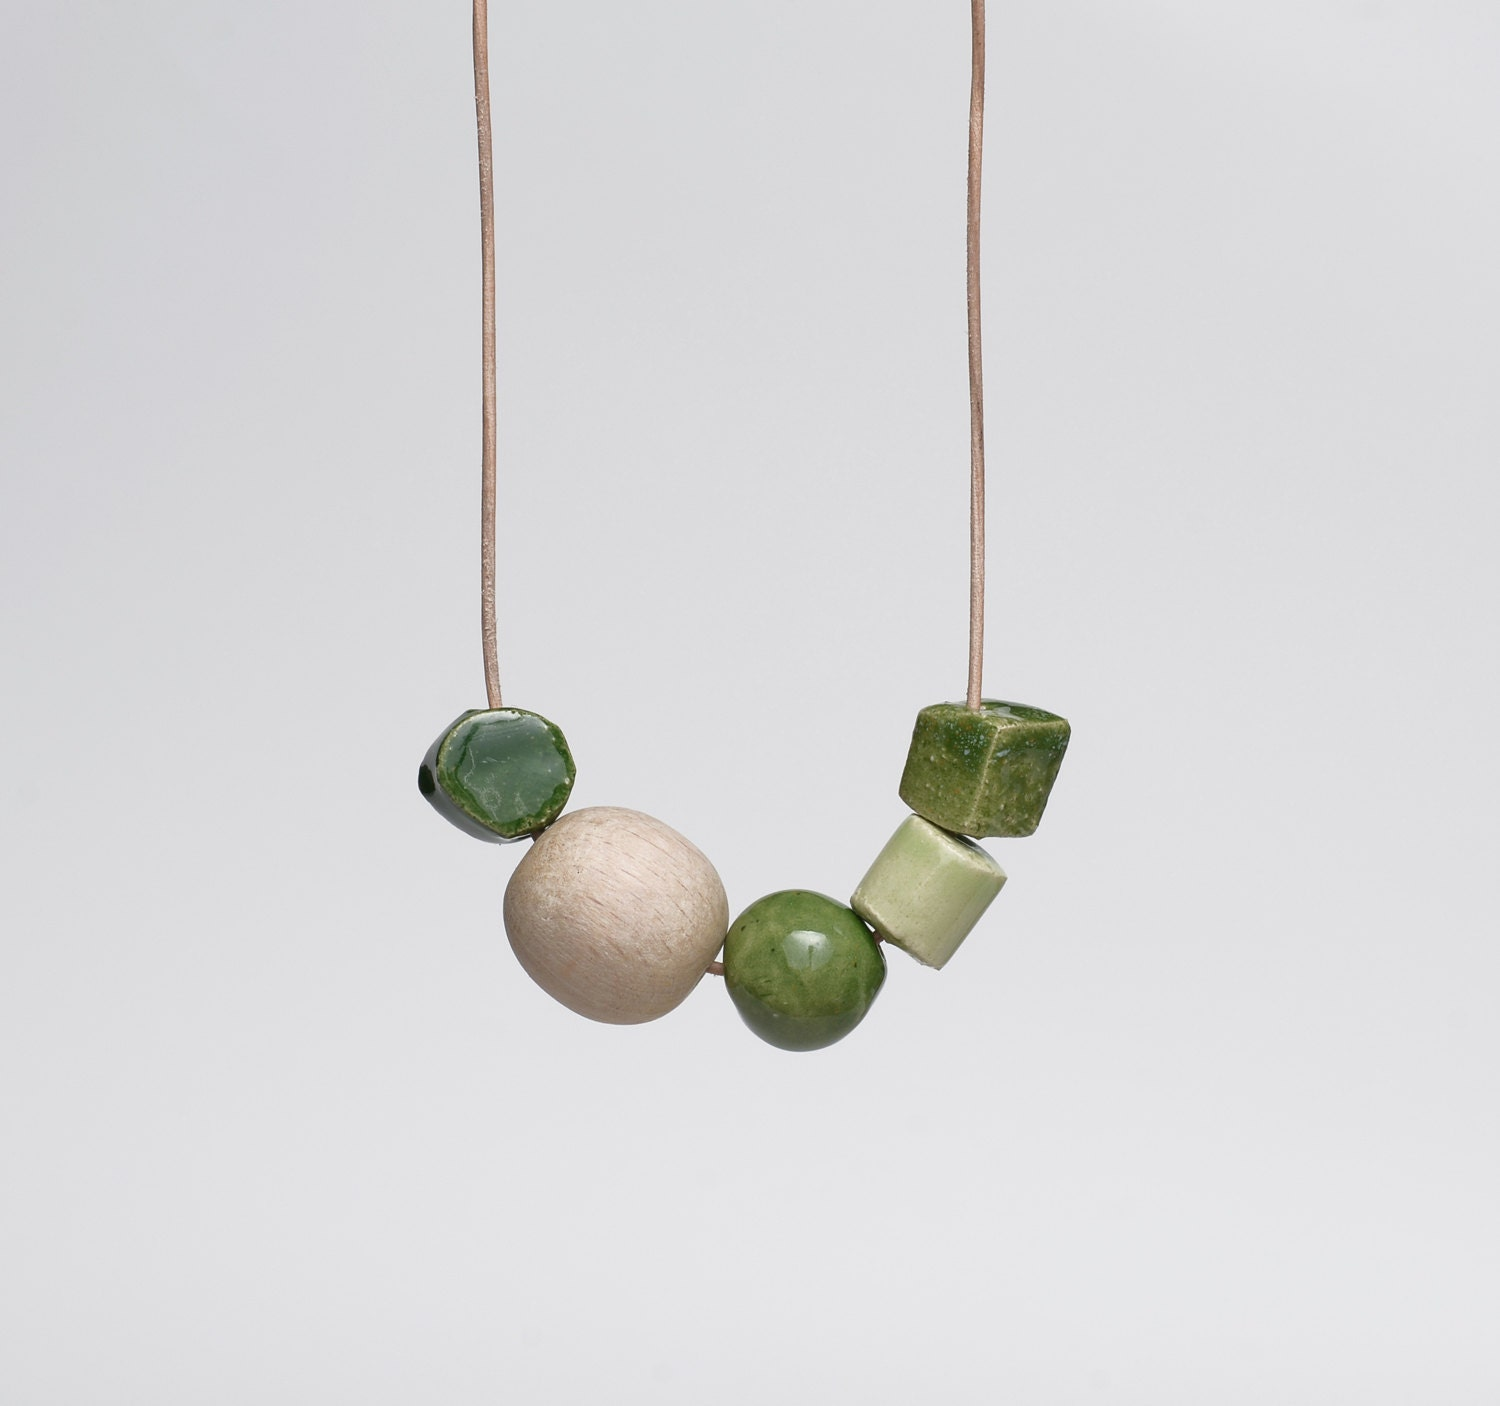 Emerald Green Ceramic Necklace With a Wooden Bead Modern Mixed Media Jewellery Moss Green - terrafique